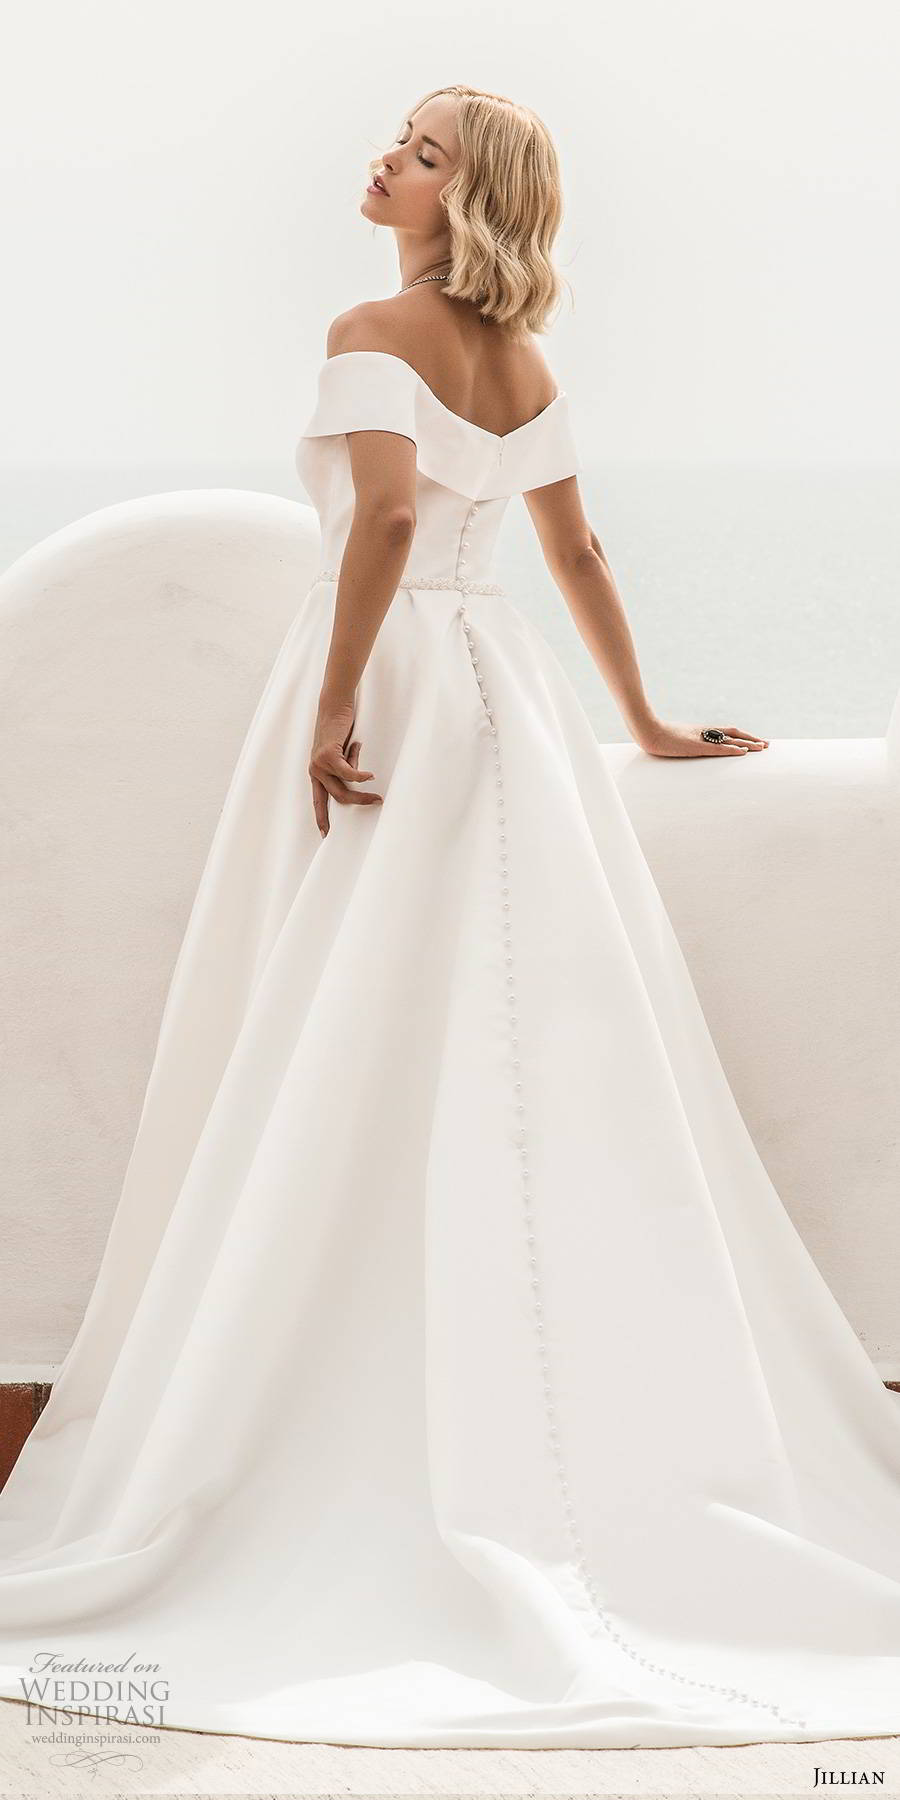 jillian sposa 2020 bridal off shoulder short sleeves sweetheart neckline minimally embellished clean elegant a line ball gown wedding dress pockets chapel train (3) bv